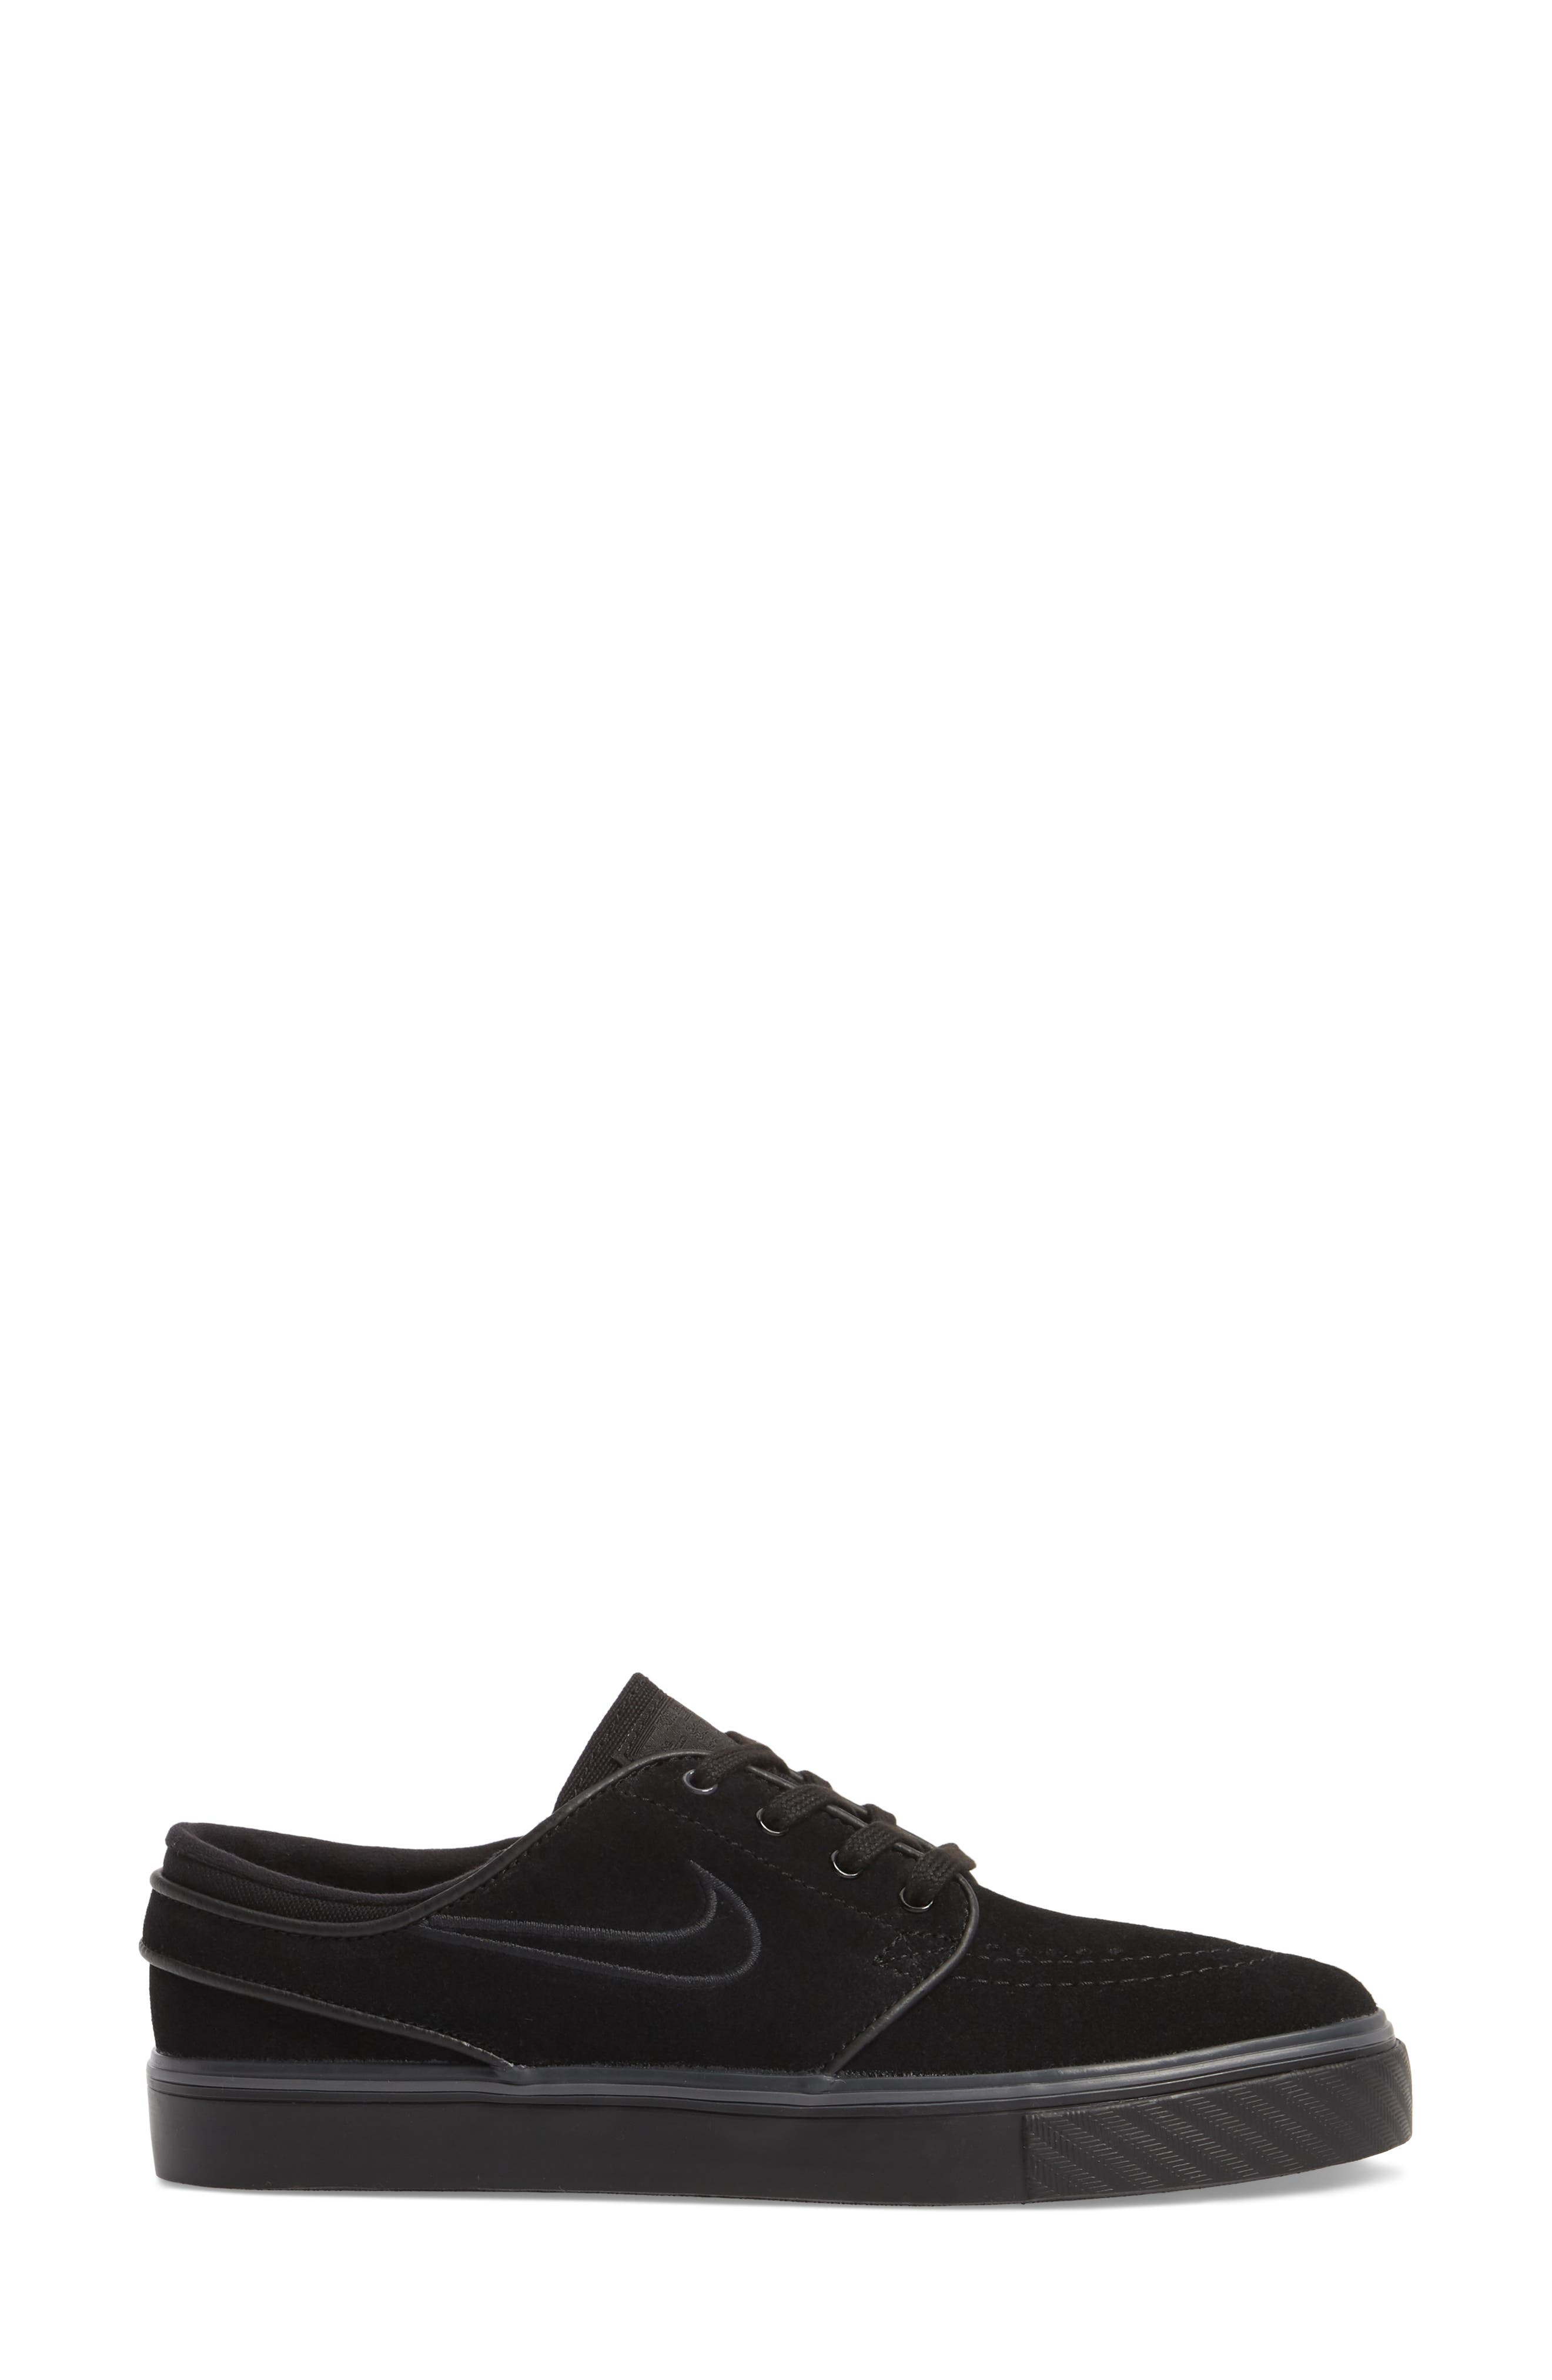 SB Air Zoom Stefan Janoski Skate Sneaker,                             Alternate thumbnail 3, color,                             Black/ Black/ Black